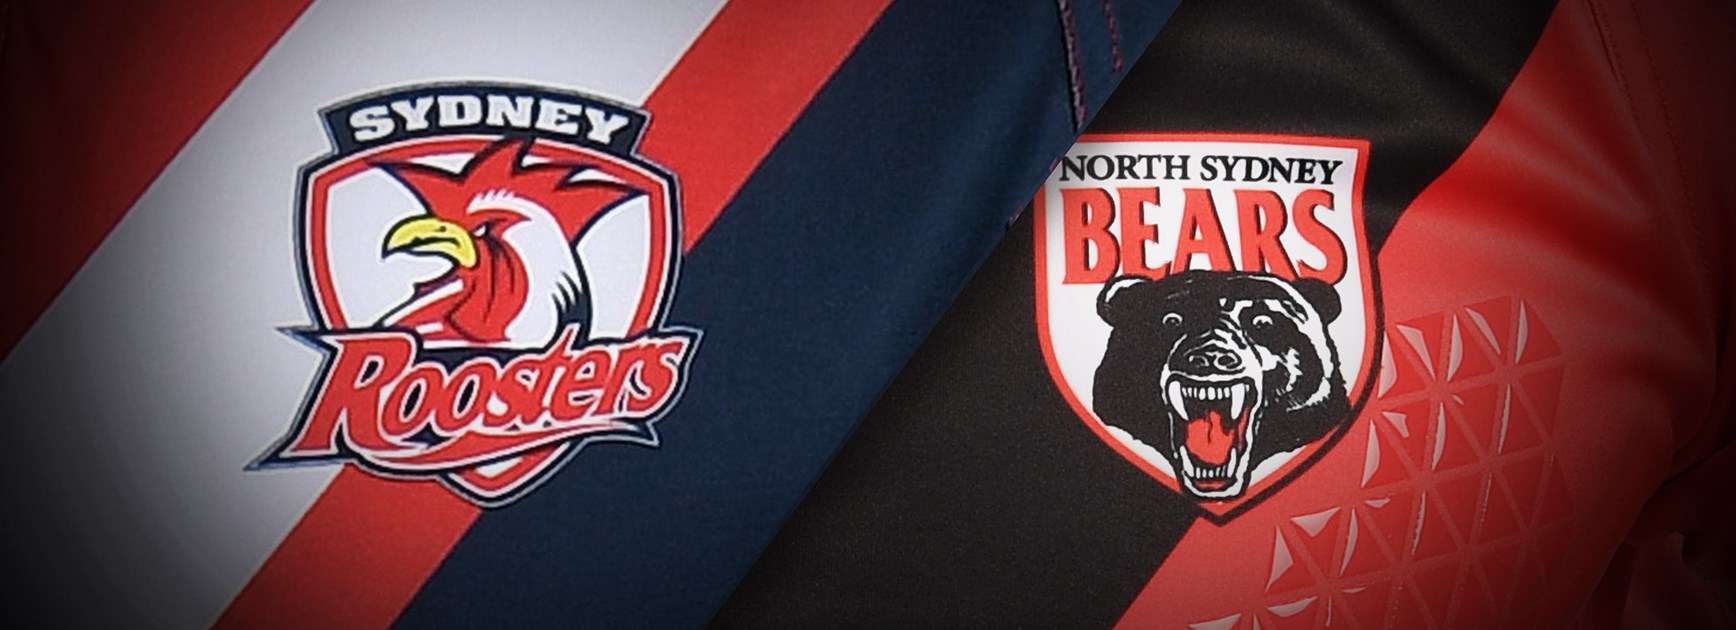 Sydney Roosters and North Sydney Bears form new alliance